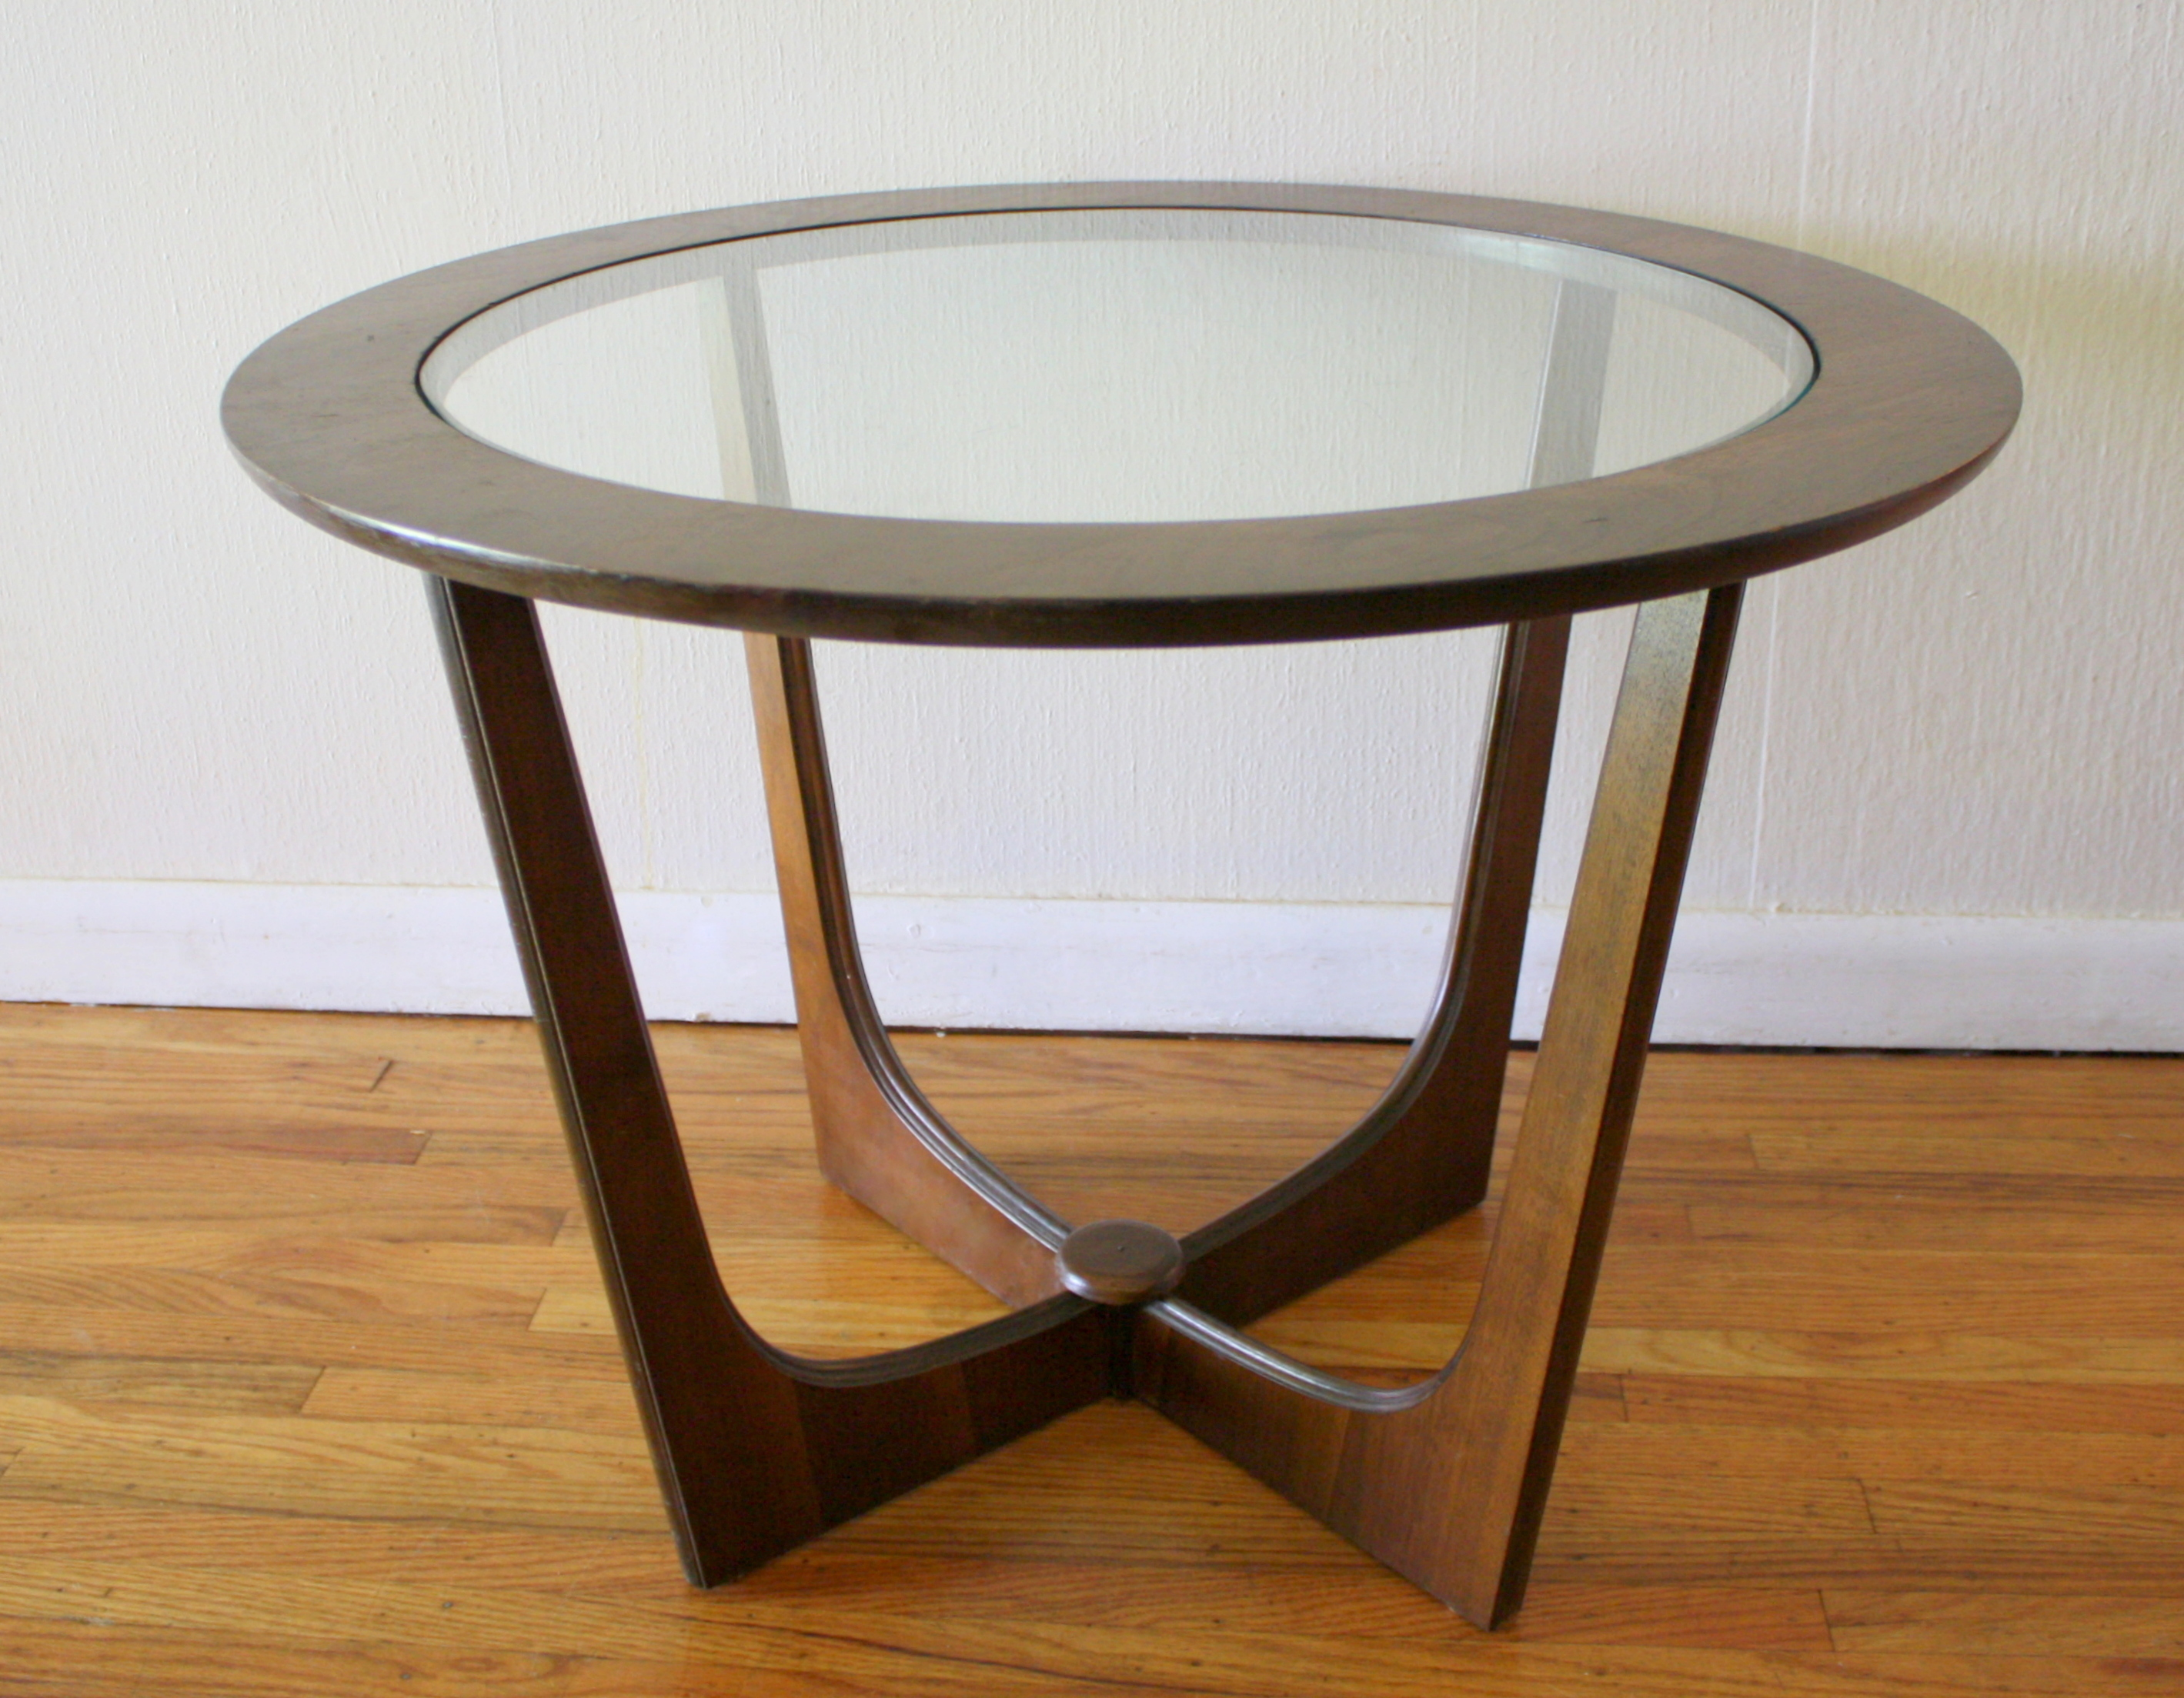 small table designs wood the outrageous nice end round glass top tables material brown finish unique coffee design idea modern solid shape accent pedestal nightstand nesting